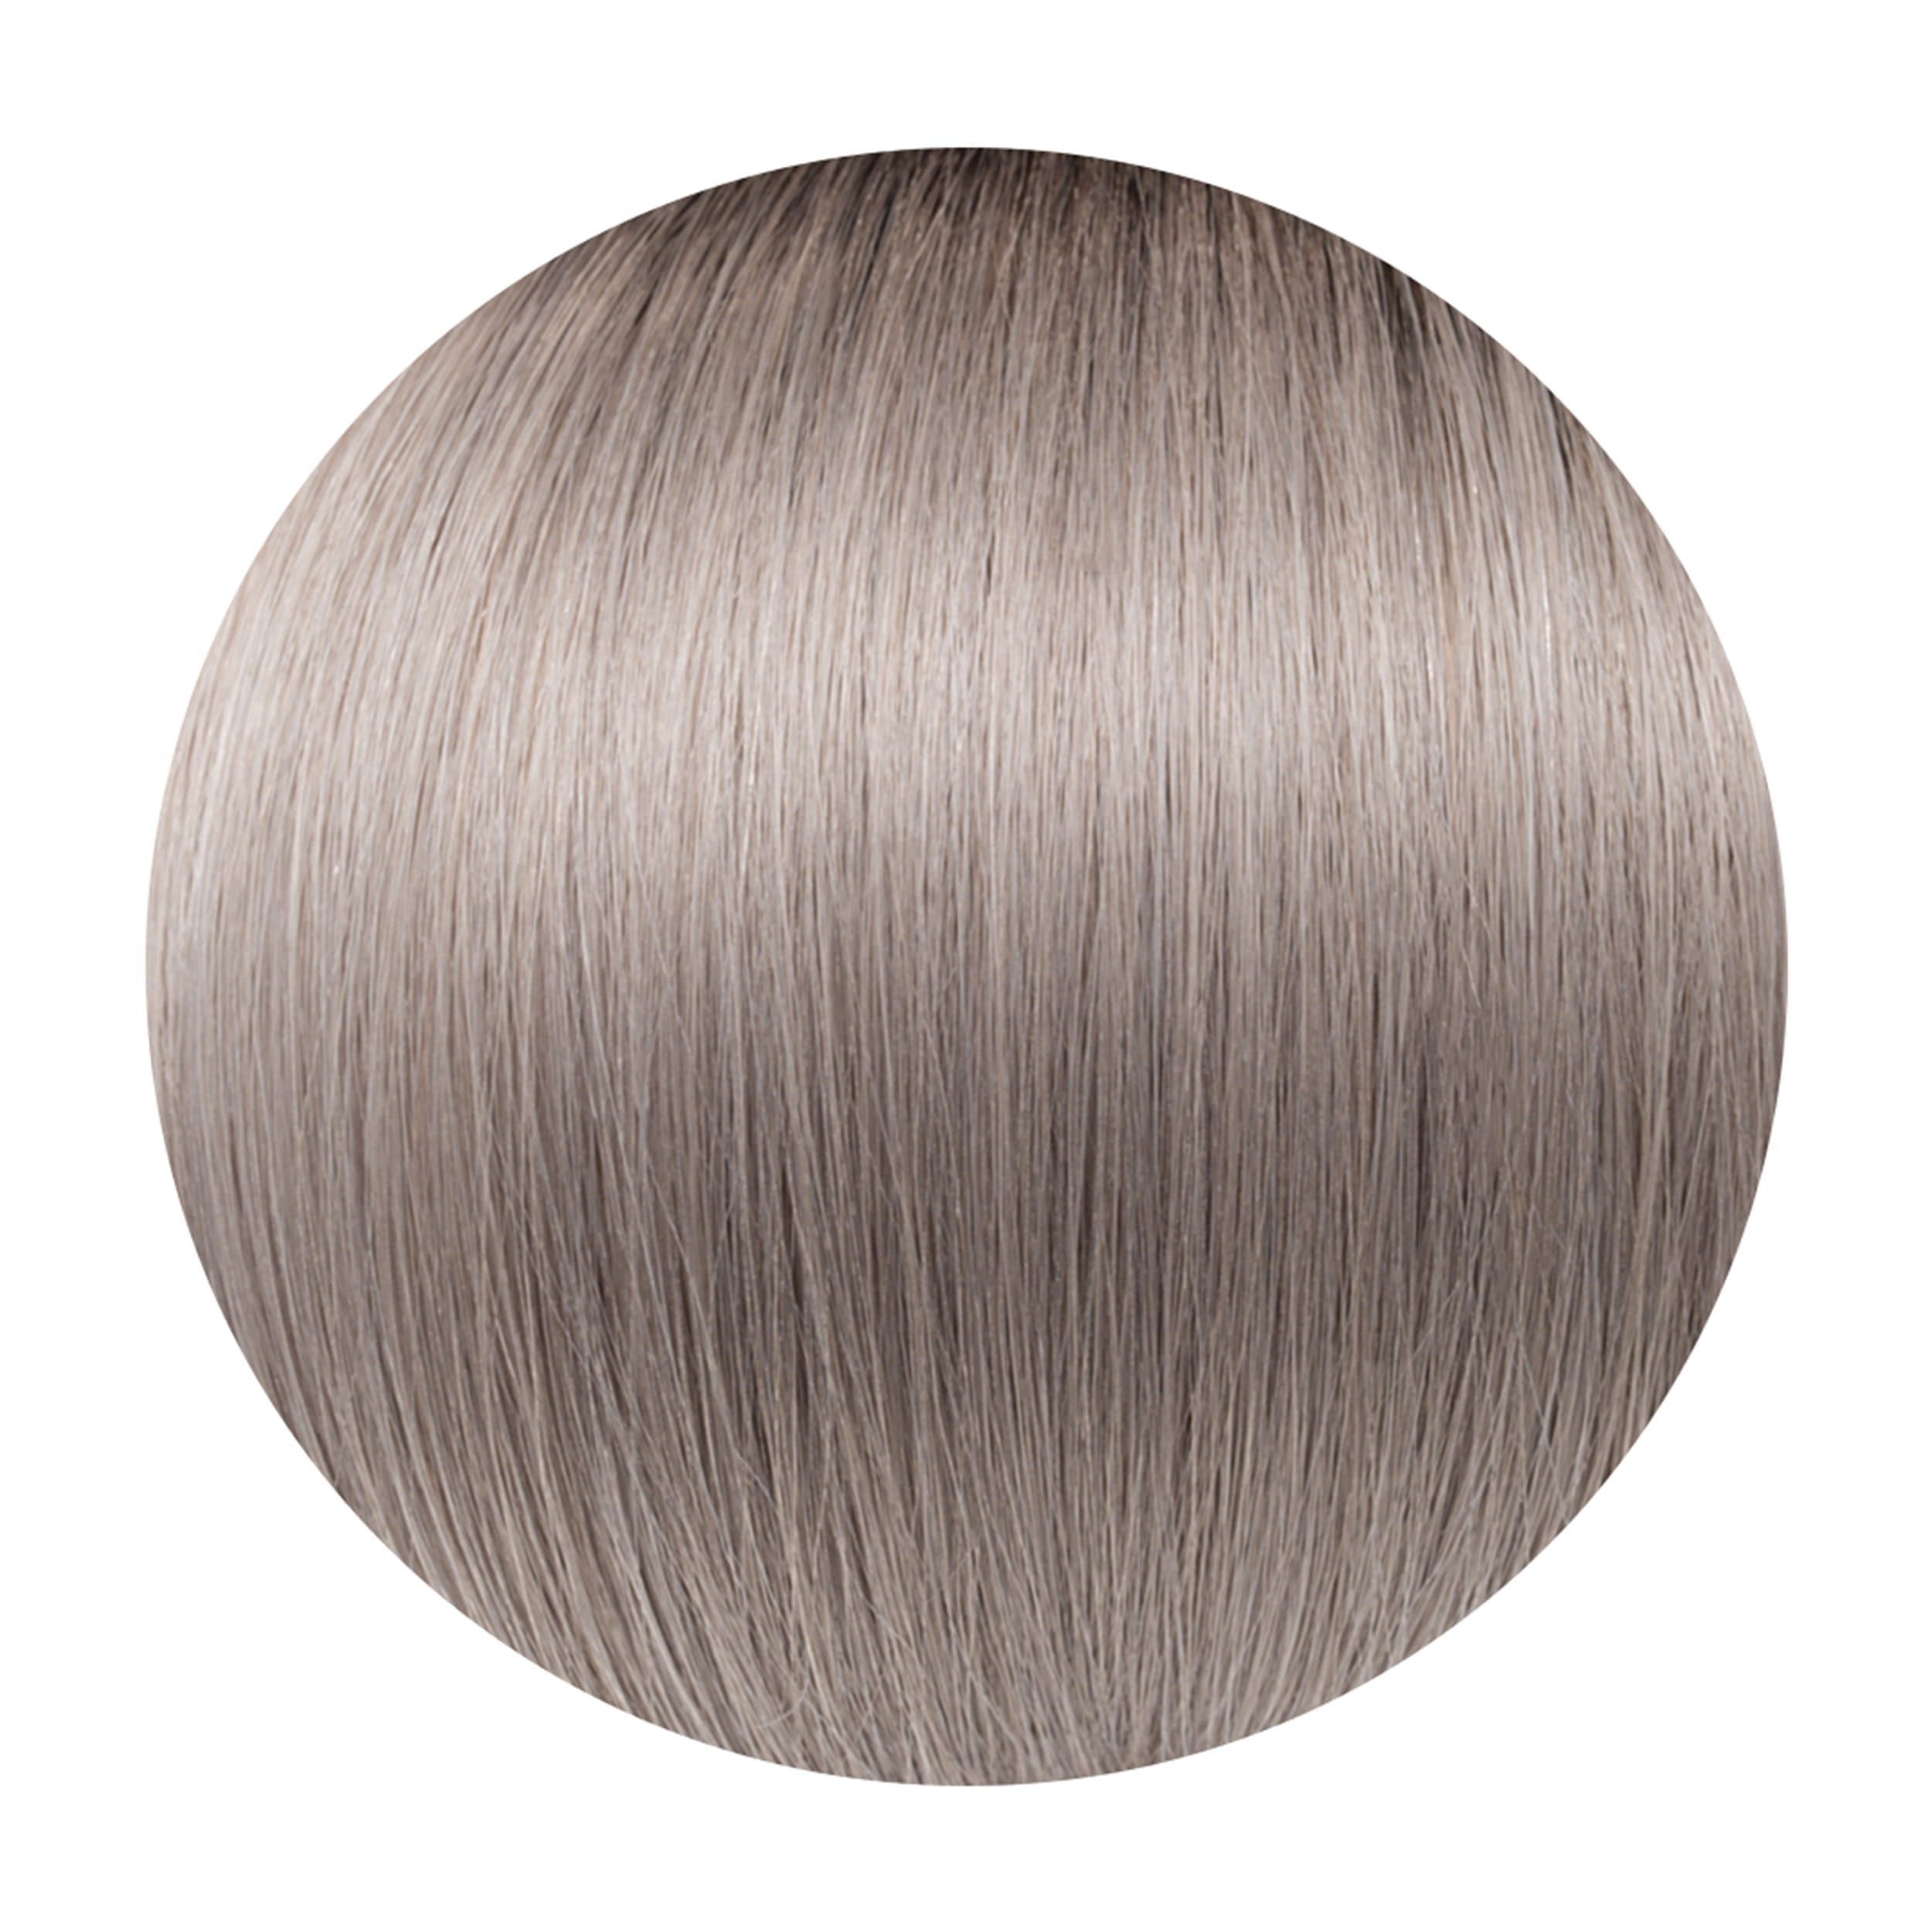 Salt n Pepper Balayage Colour Human Hair Extensions Clip in 5 Piece